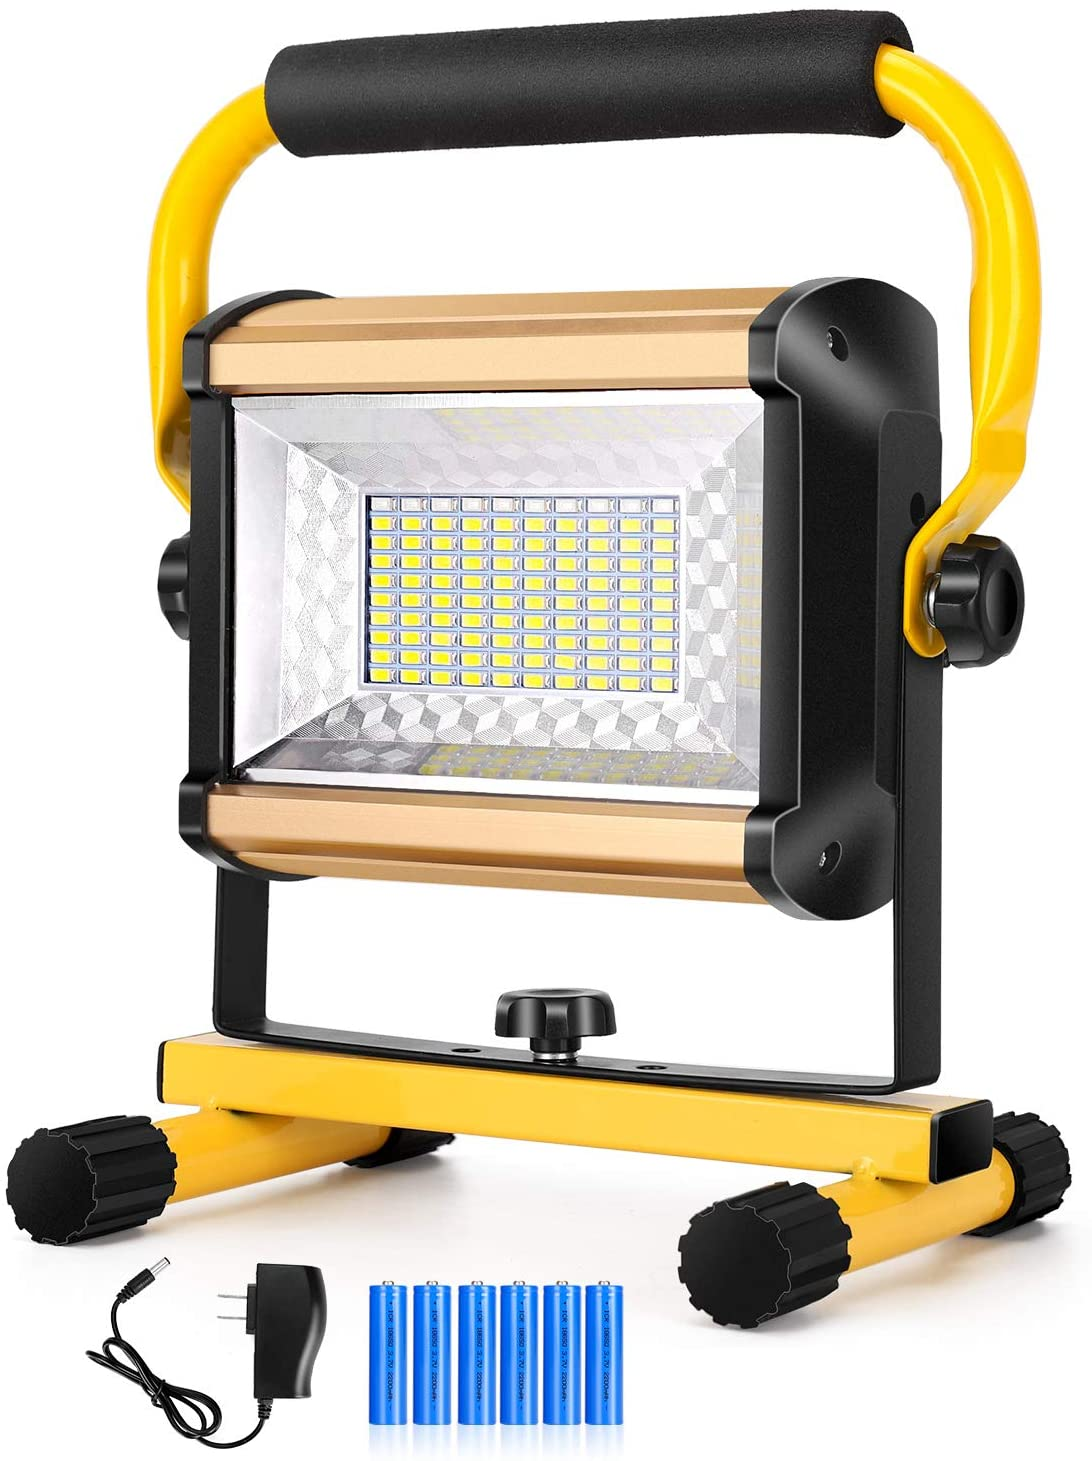 DOZAWA 100W Rechargeable LED Work Light,Super Bright IP65 Waterproof Flood Lights Portable Work Lights with Stand for Camping Garage Workshop Construction Site Repairing Job Site Light